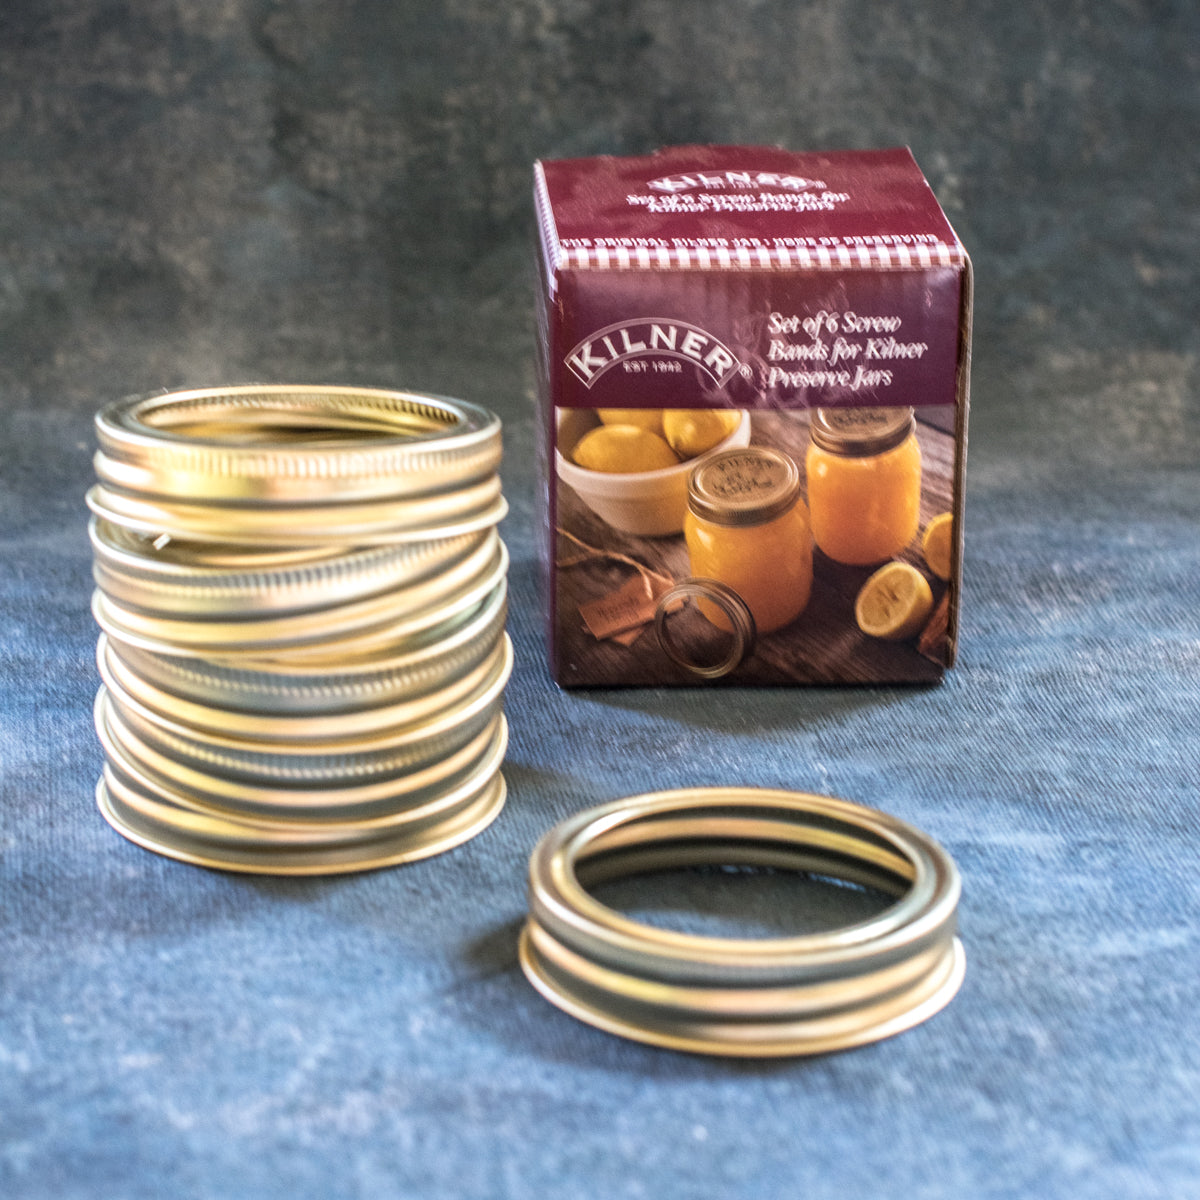 hospitality preserve smart supplies screw bands by kilner